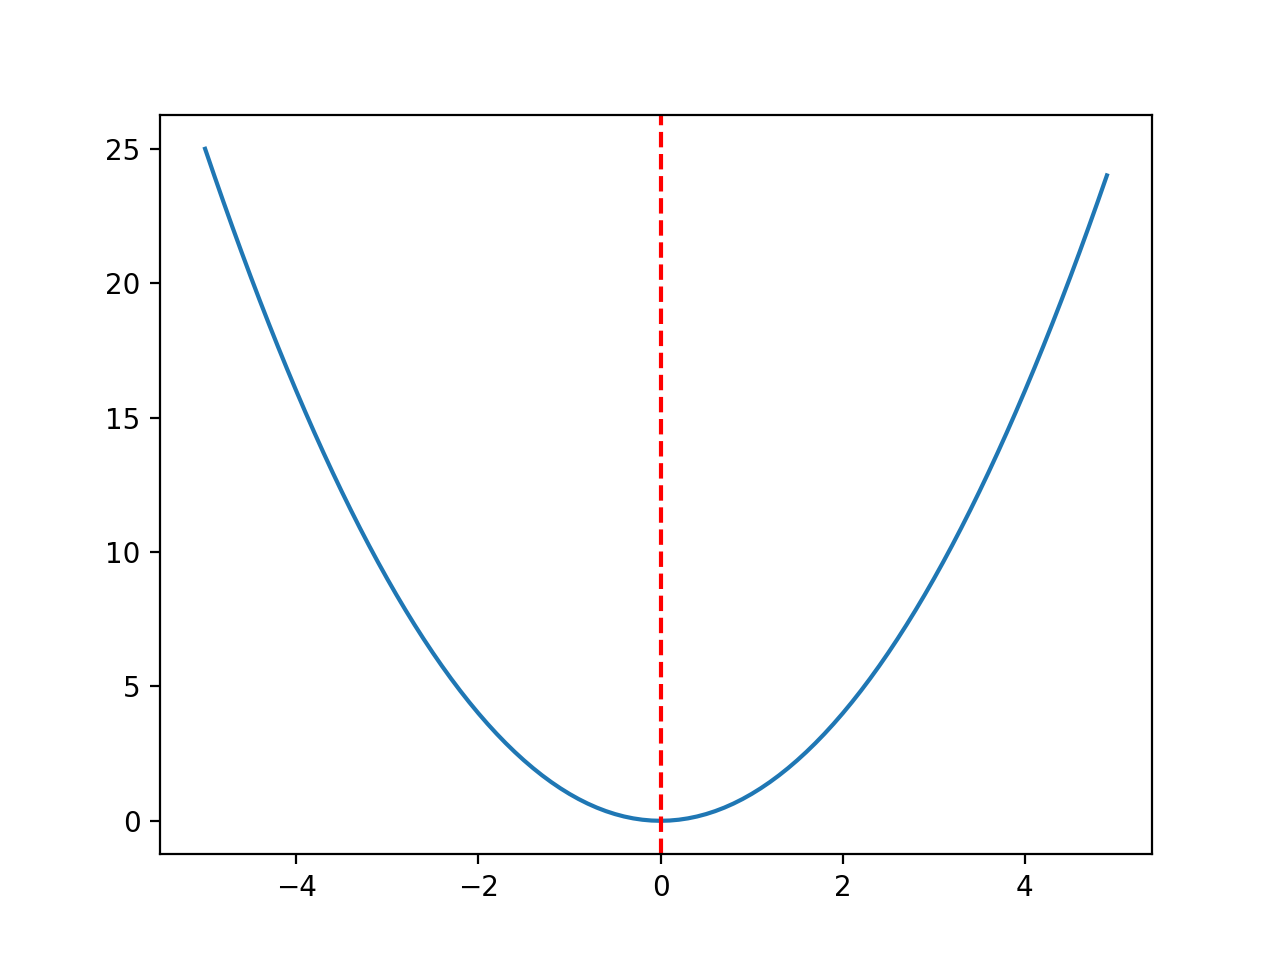 Line Plot of Objective Function With Optima Marked With a Dashed Red Line